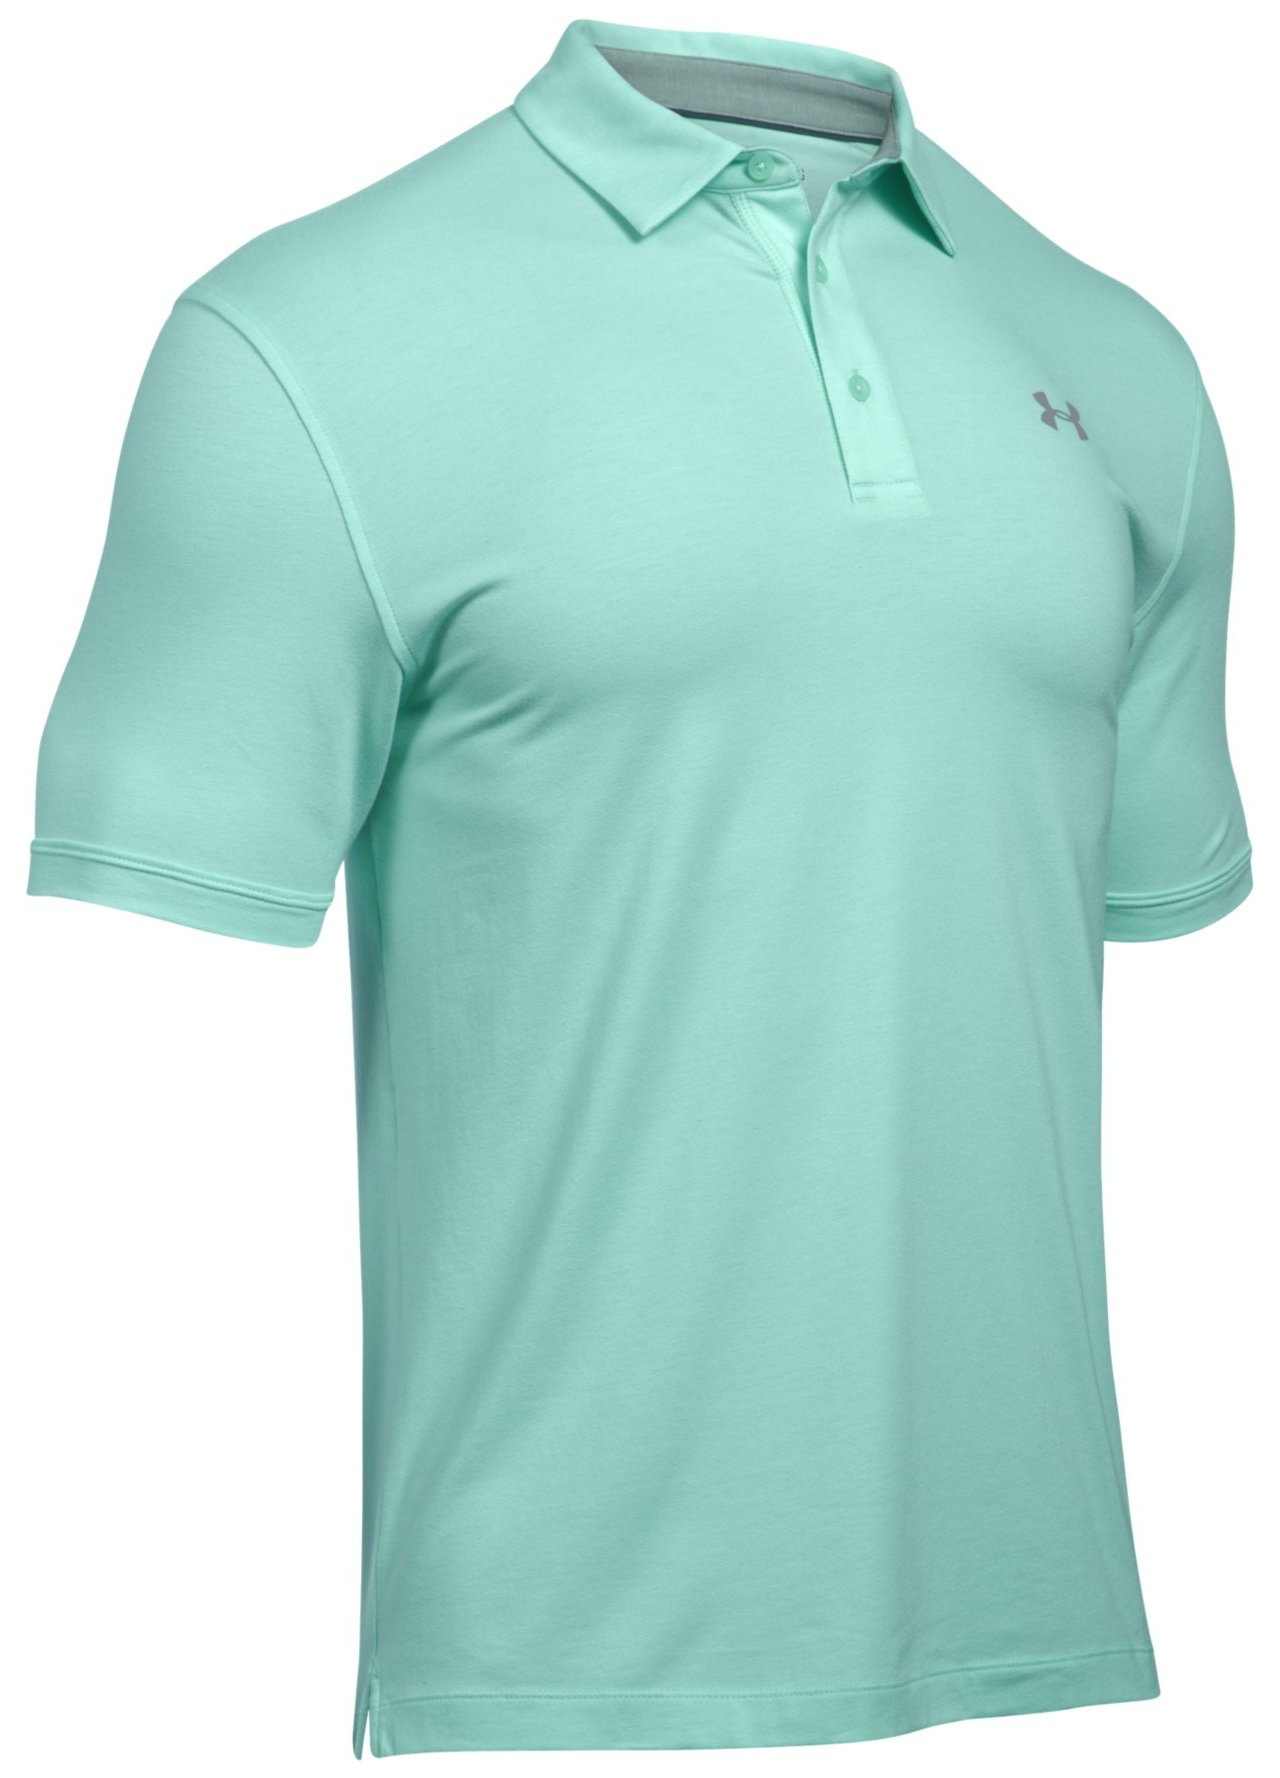 Under armour charged cotton golf polo shirt mint small ebay for Under armour charged shirt